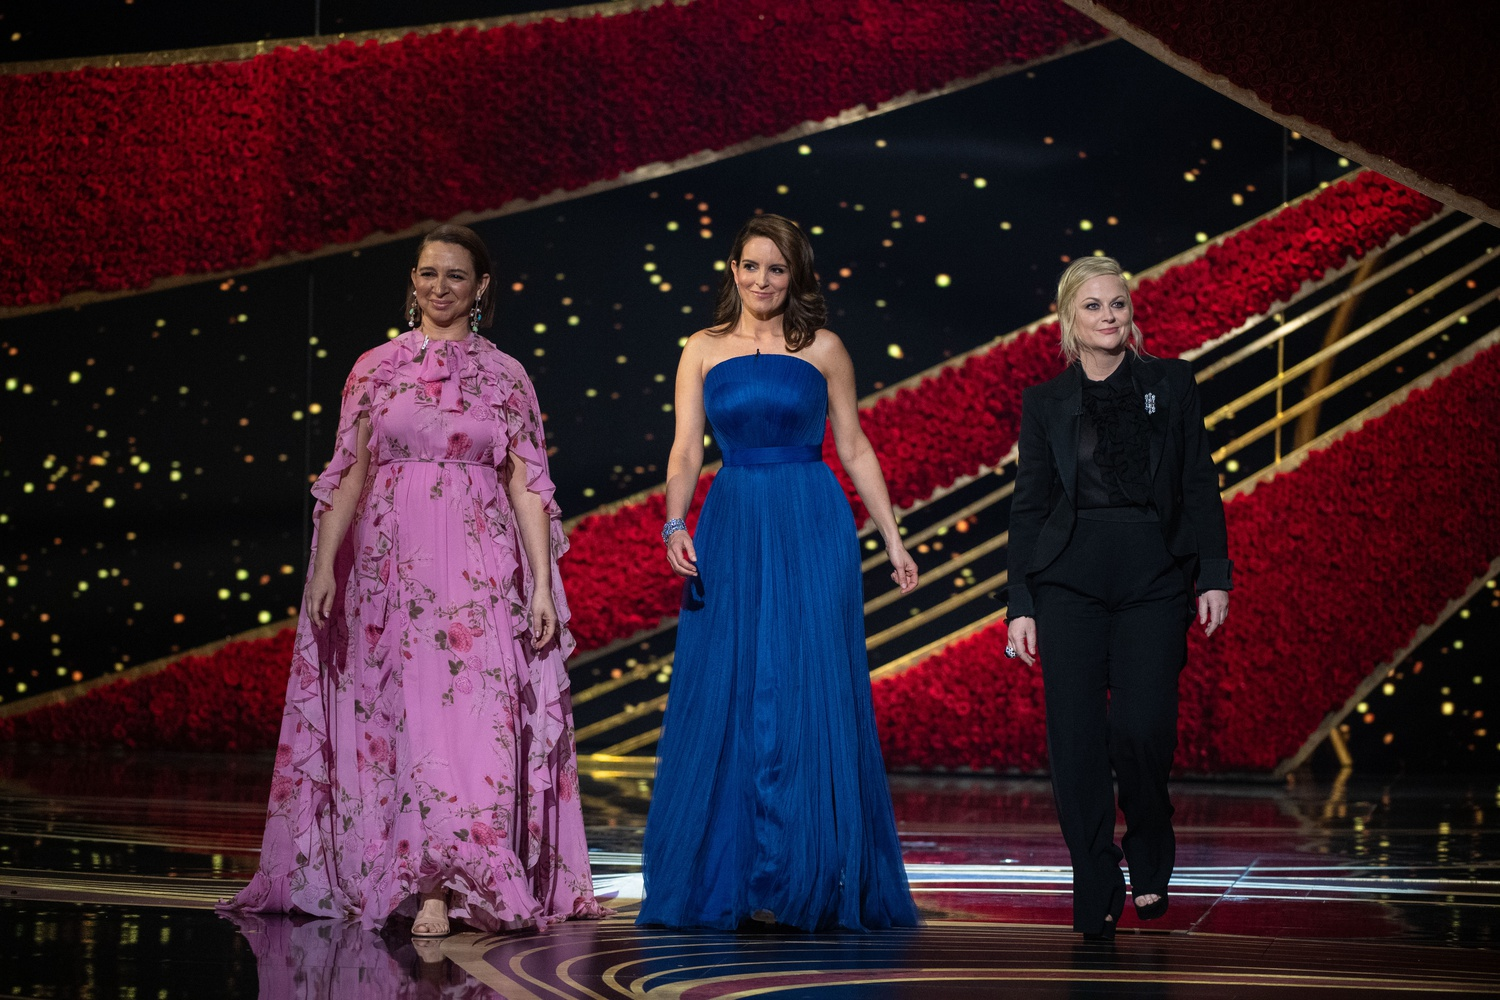 Maya Rudolph, Tina Fey and Amy Poehler present during The 91st Oscars on Feb. 24.